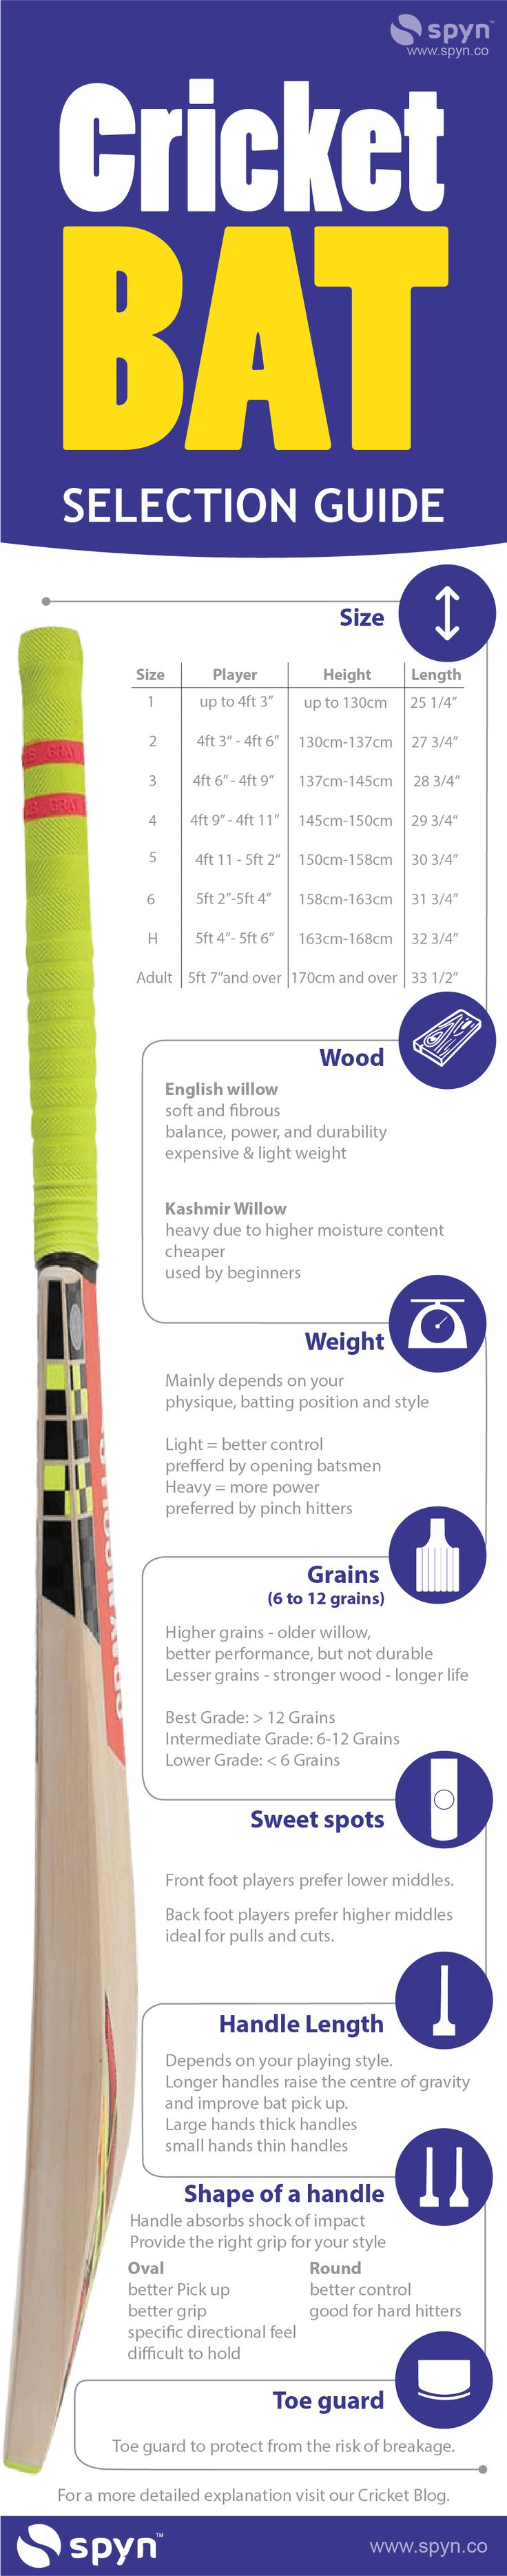 Selecting the Best Cricket Bat for your batting style can be tricky. Understand the nuances and technicalities to make the right decision.